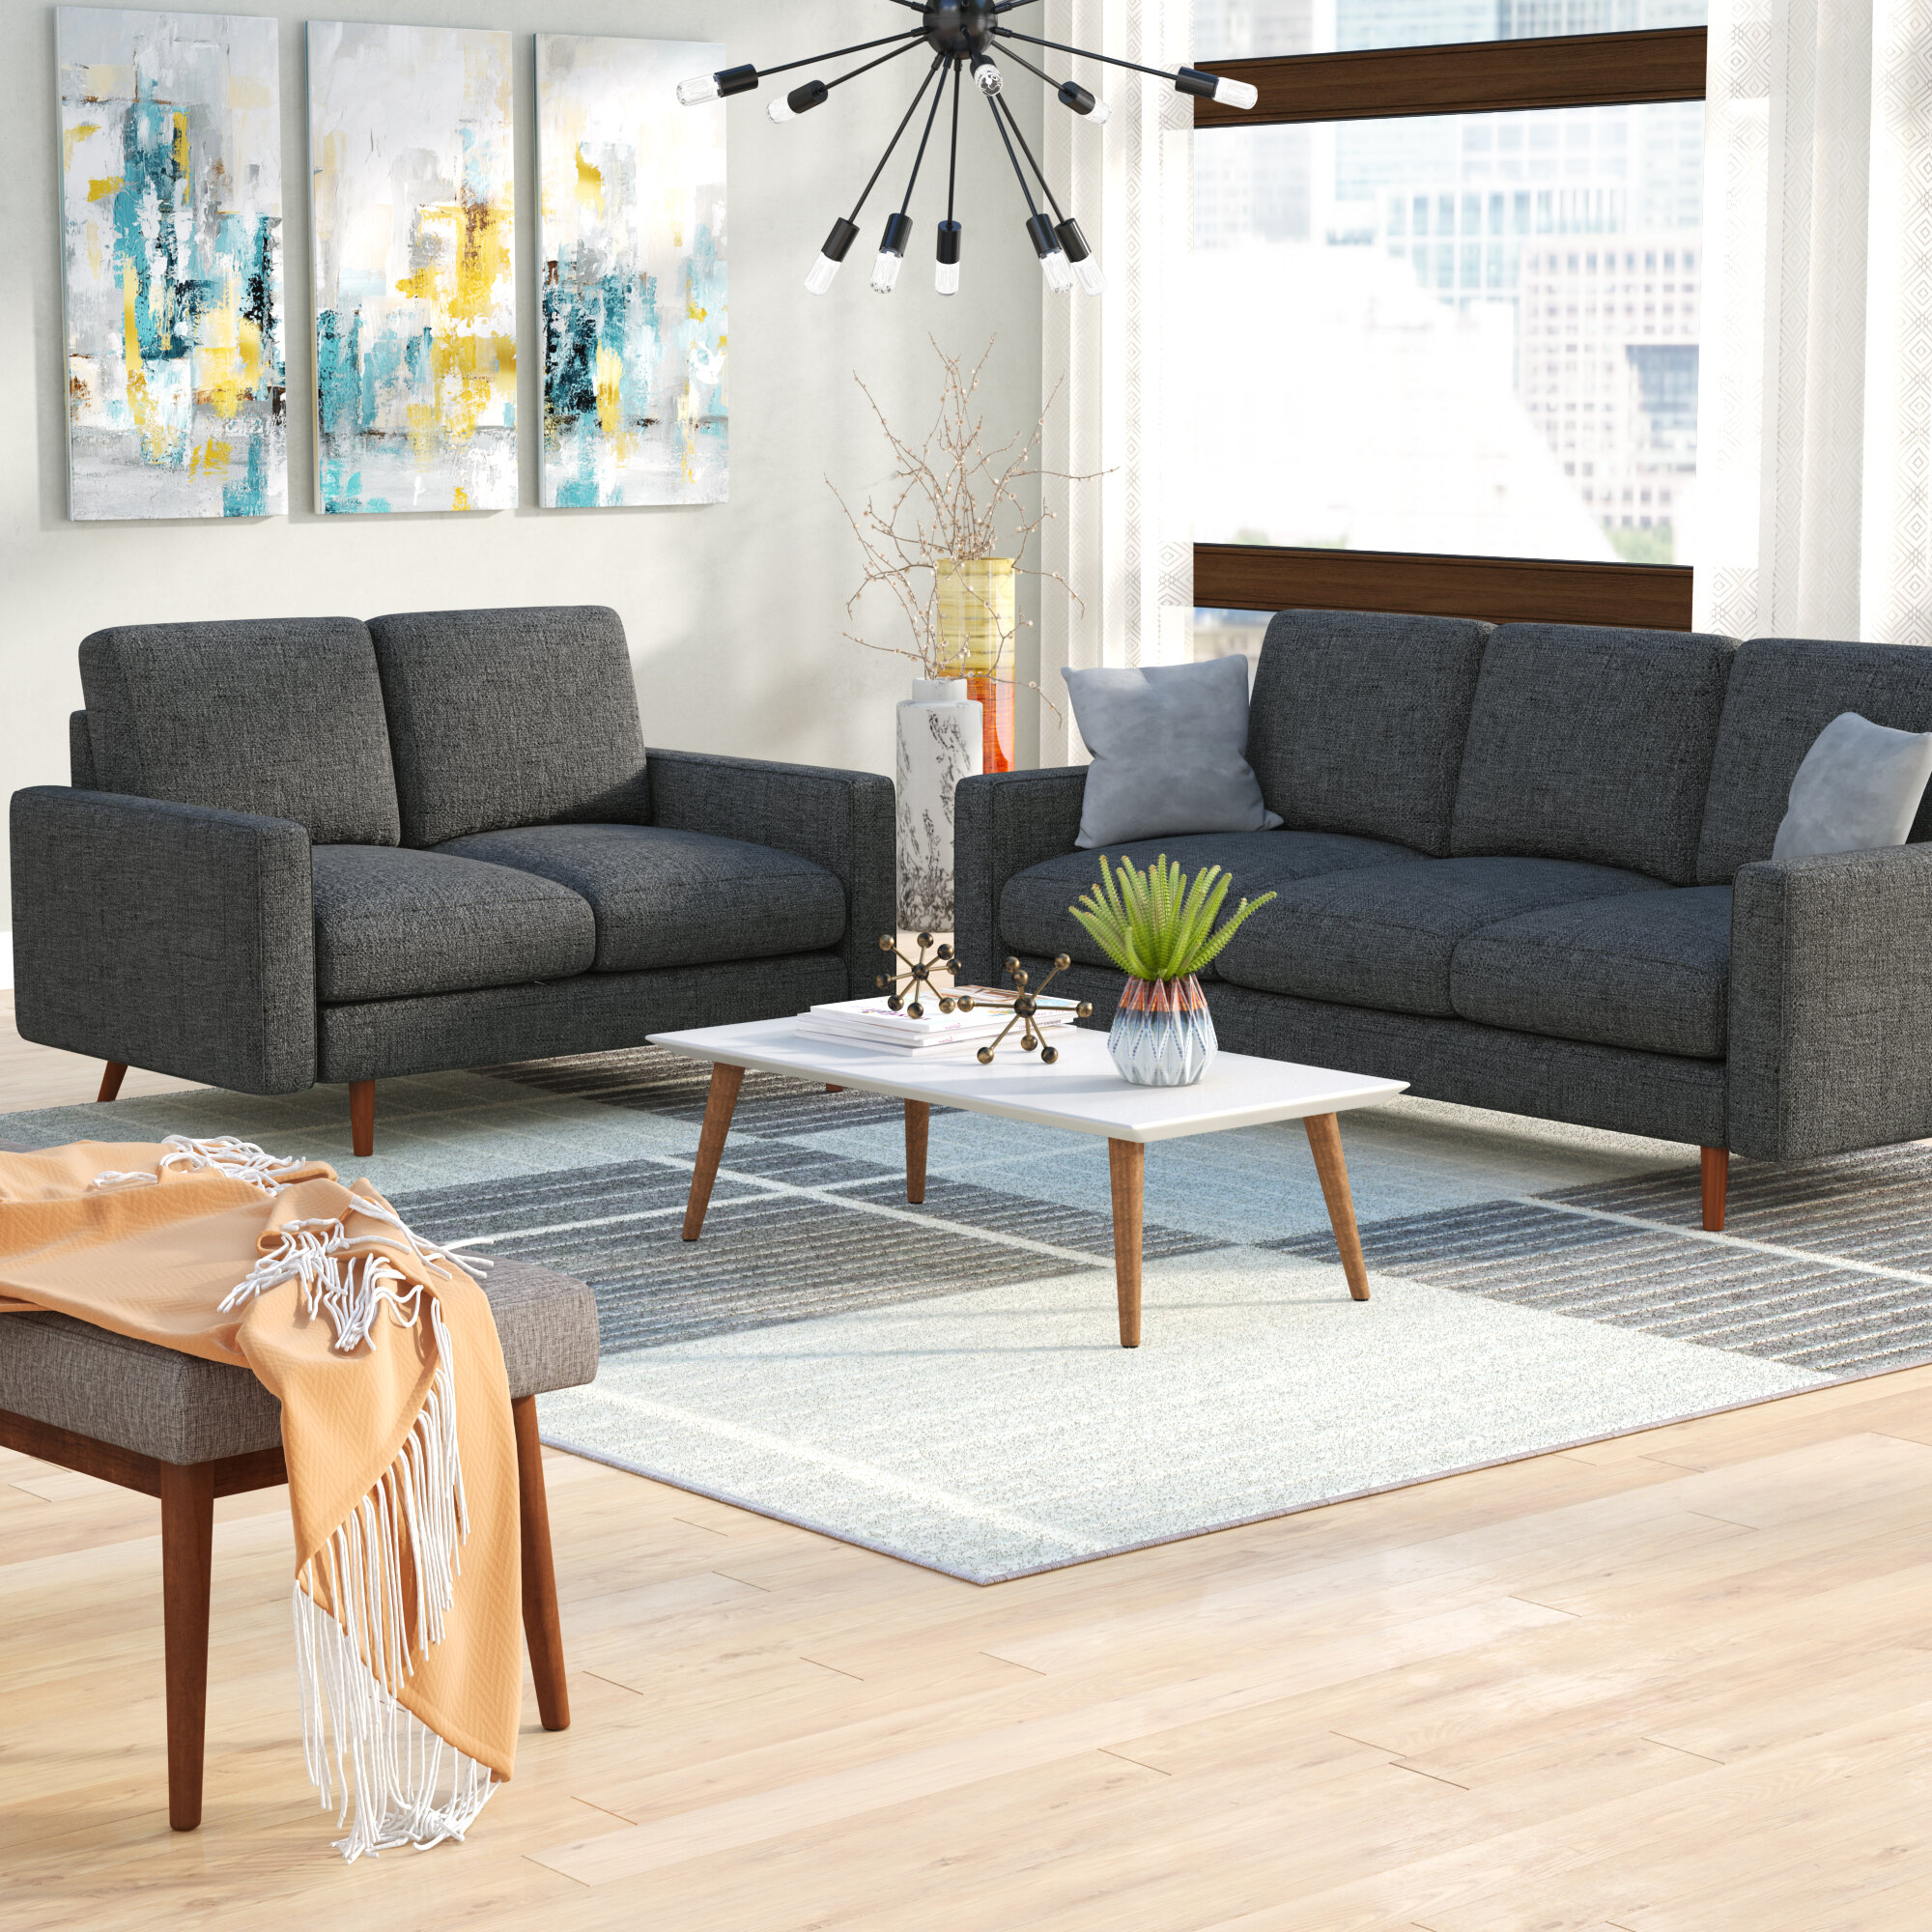 Macsen 2 Piece Living Room Set